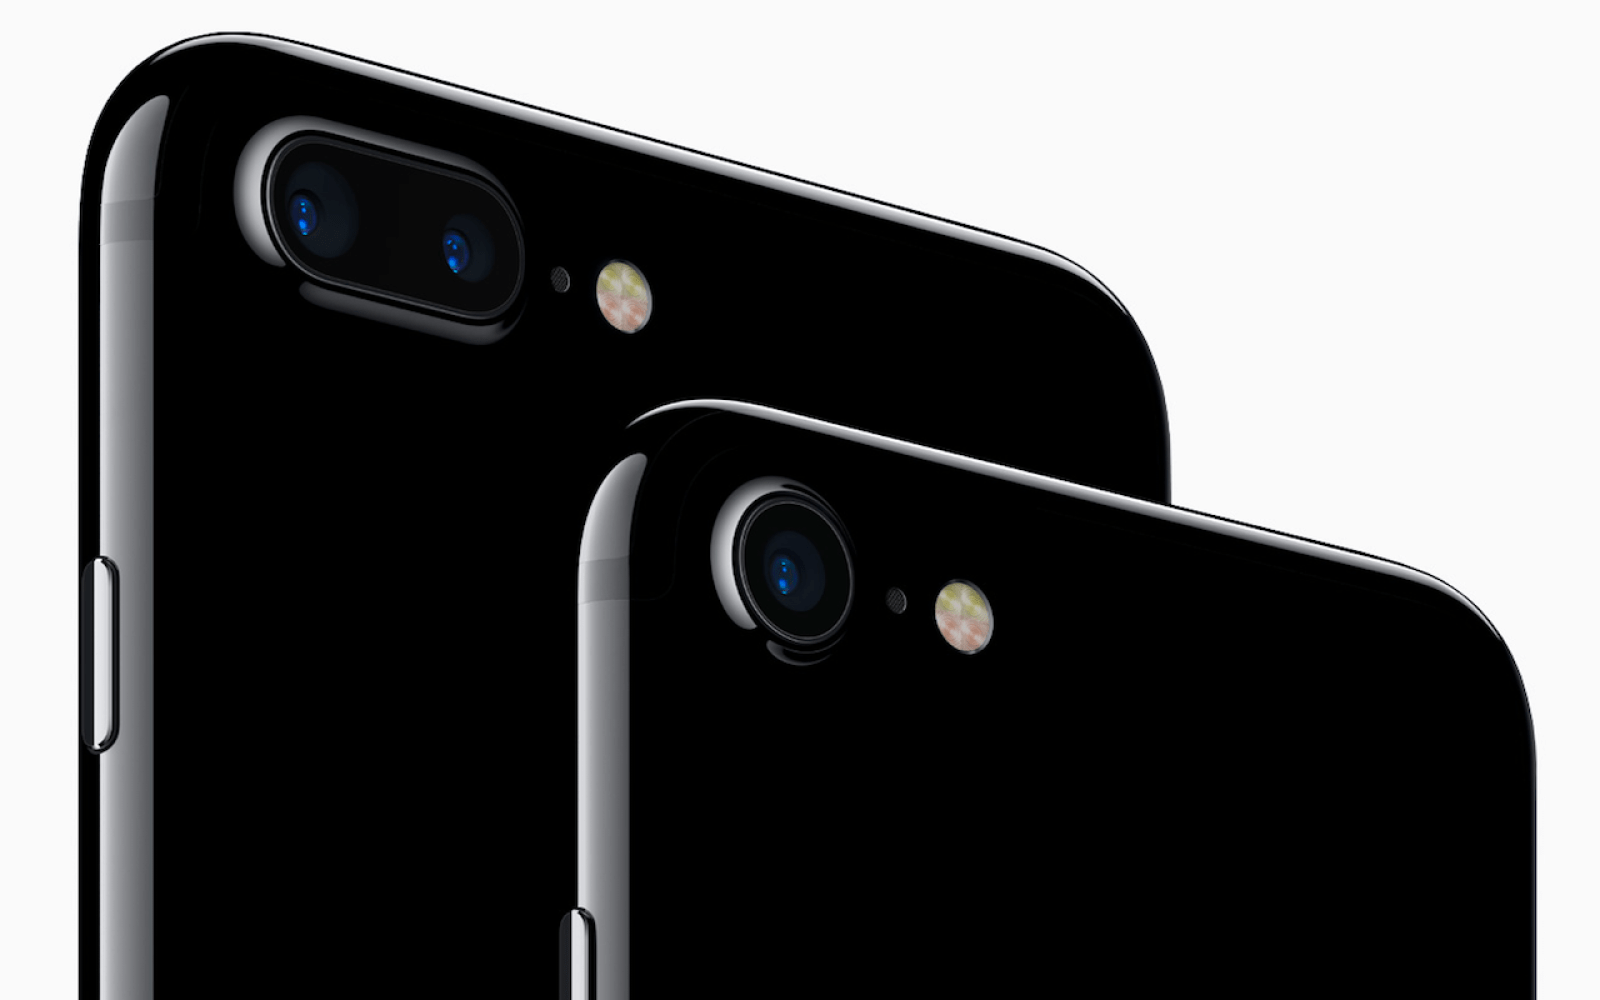 Apple unveils the new iPhone 7 & 7 Plus, preorders start Sep. 9